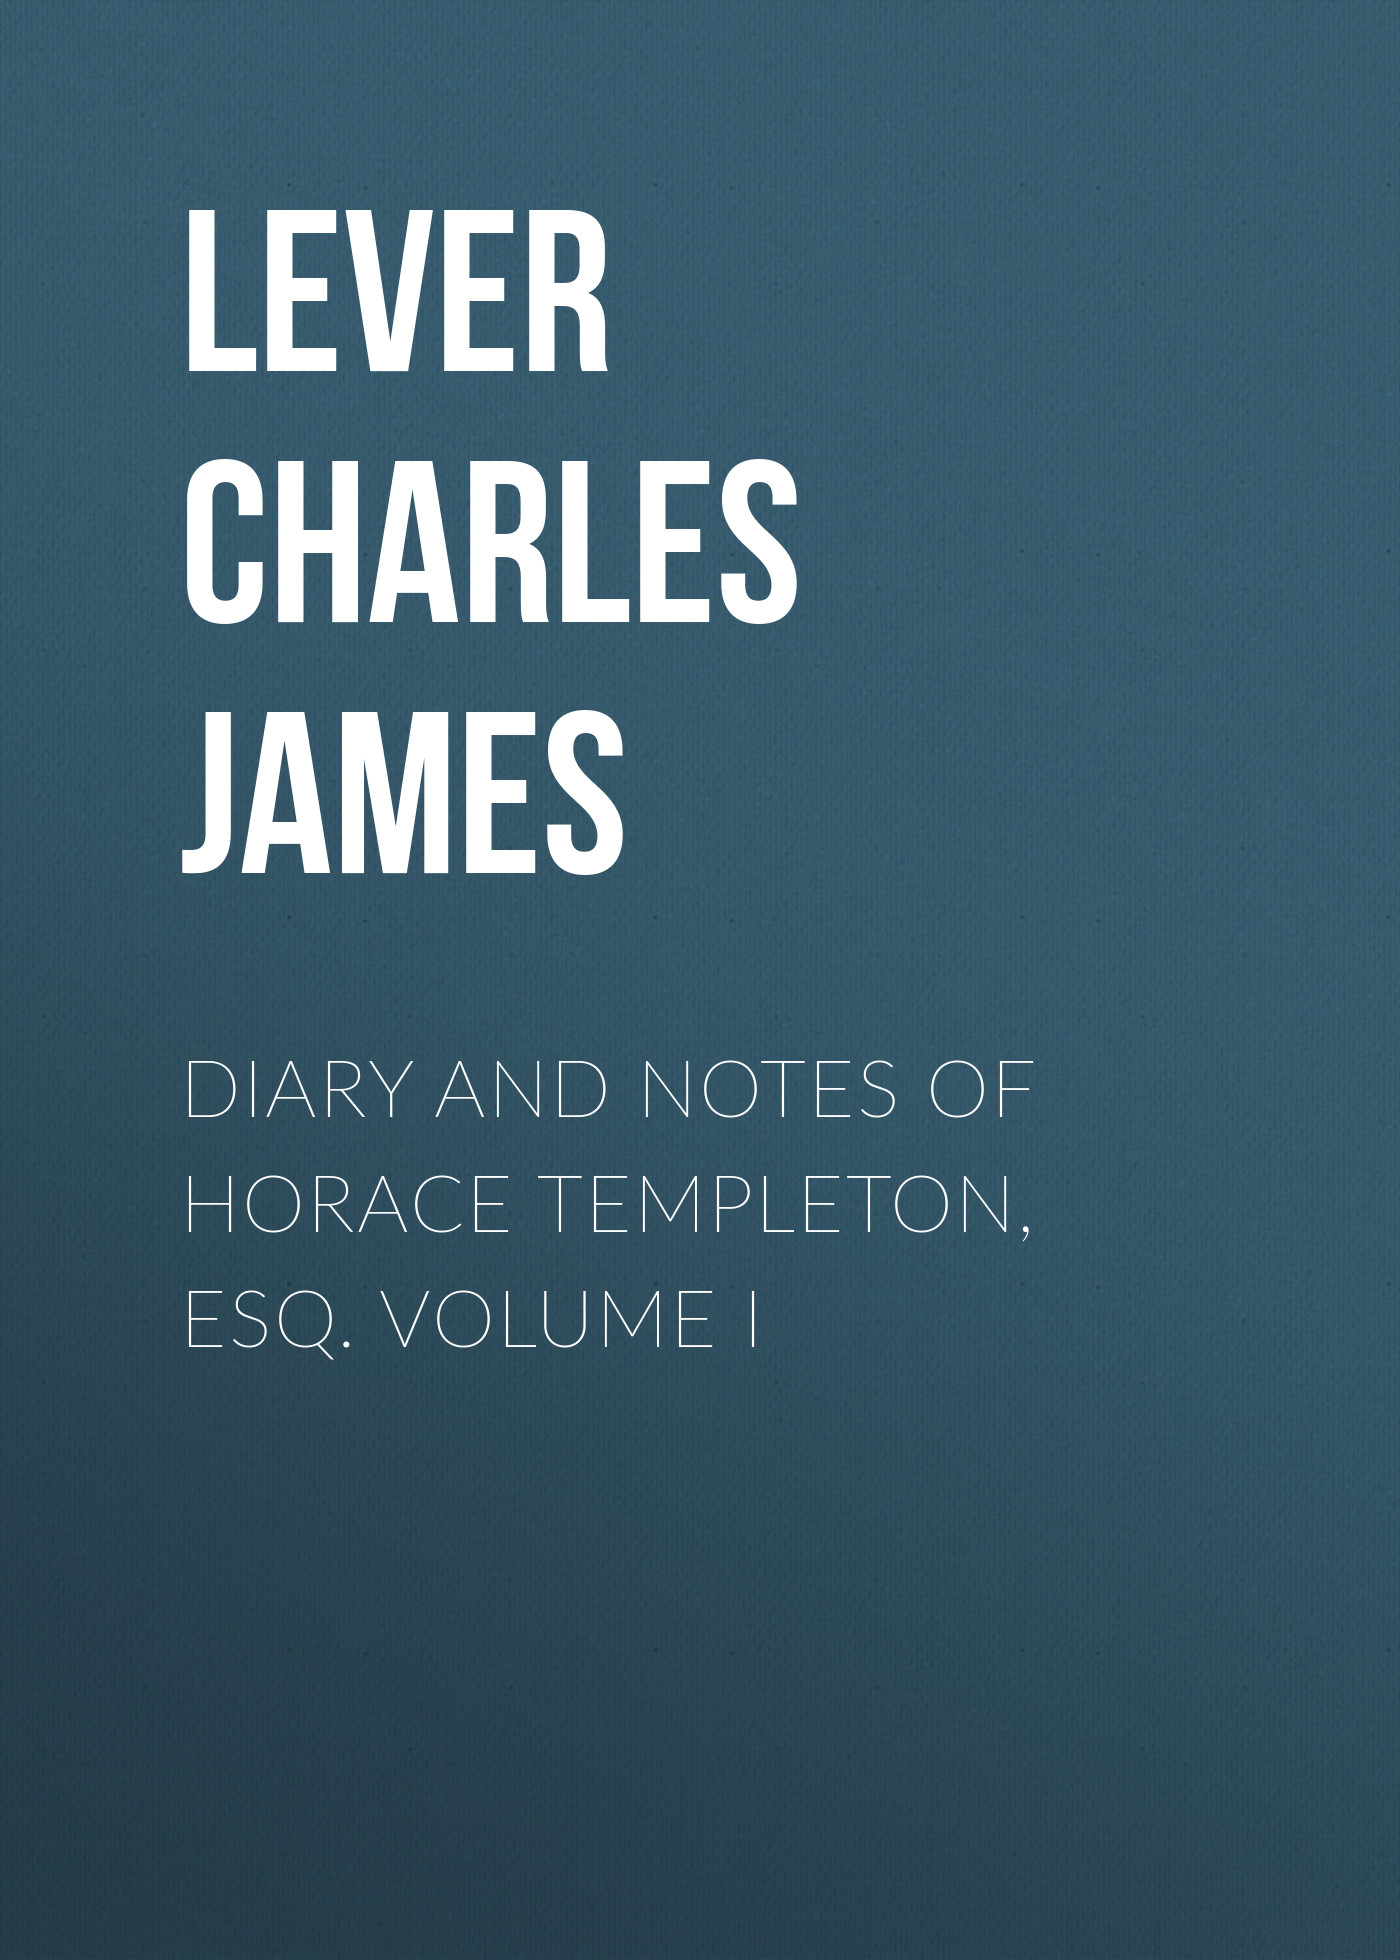 Diary And Notes Of Horace Templeton, Esq. Volume I